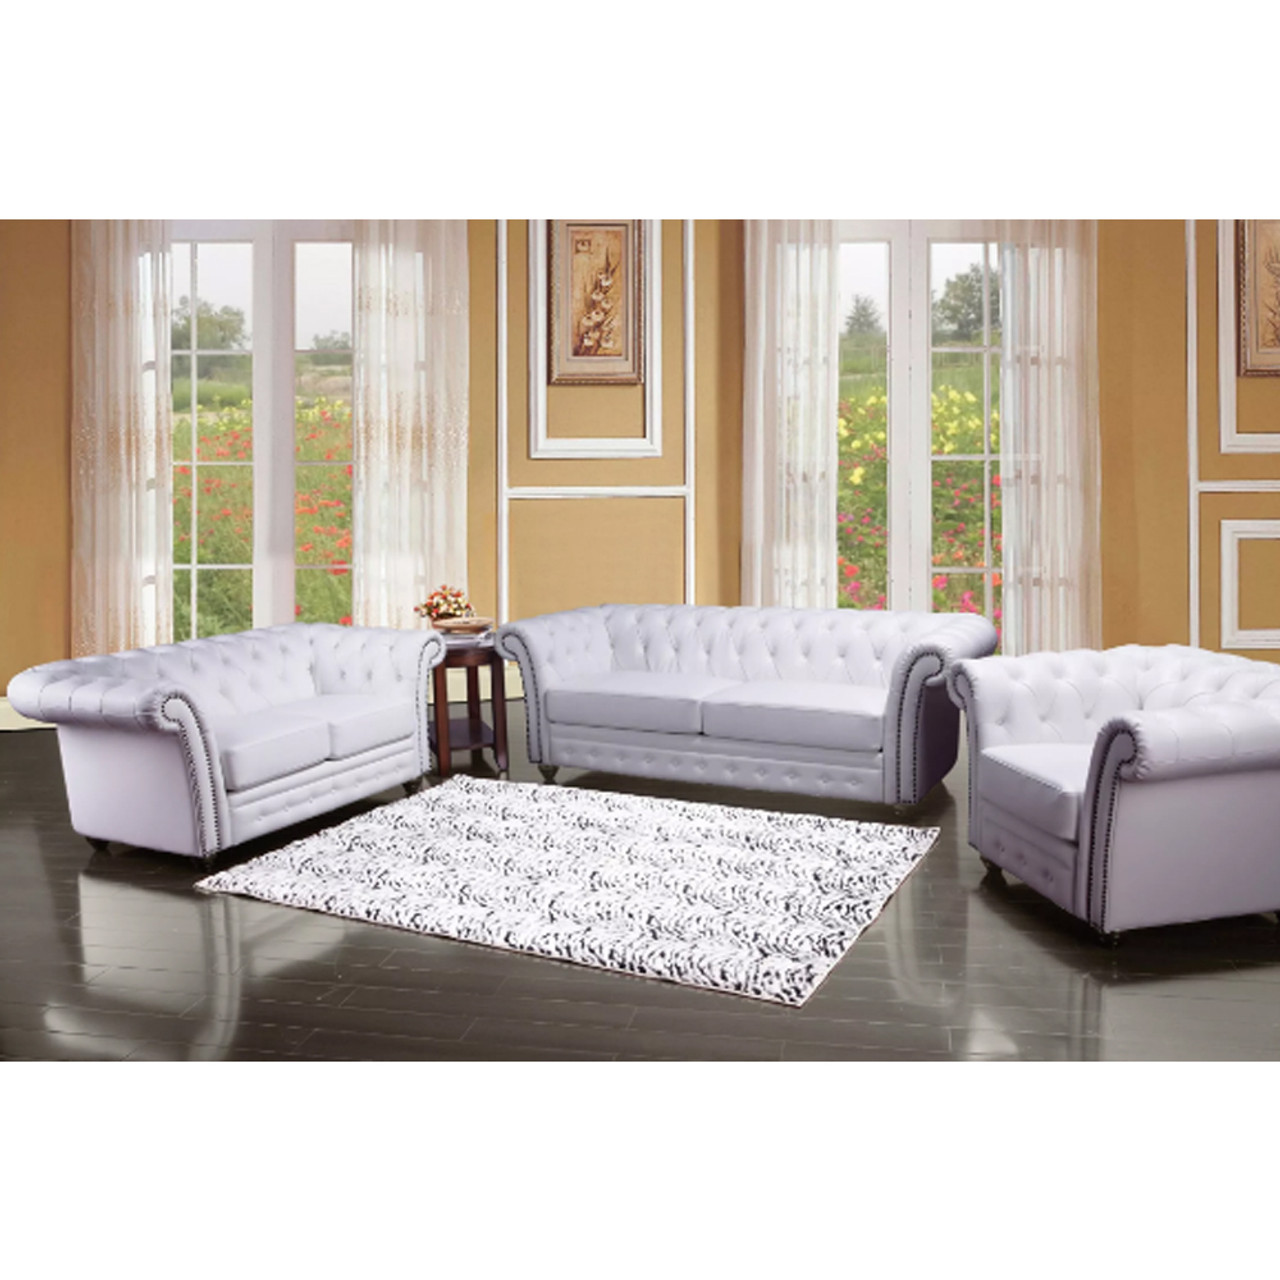 ... Camden White Bonded Leather Sofa Set